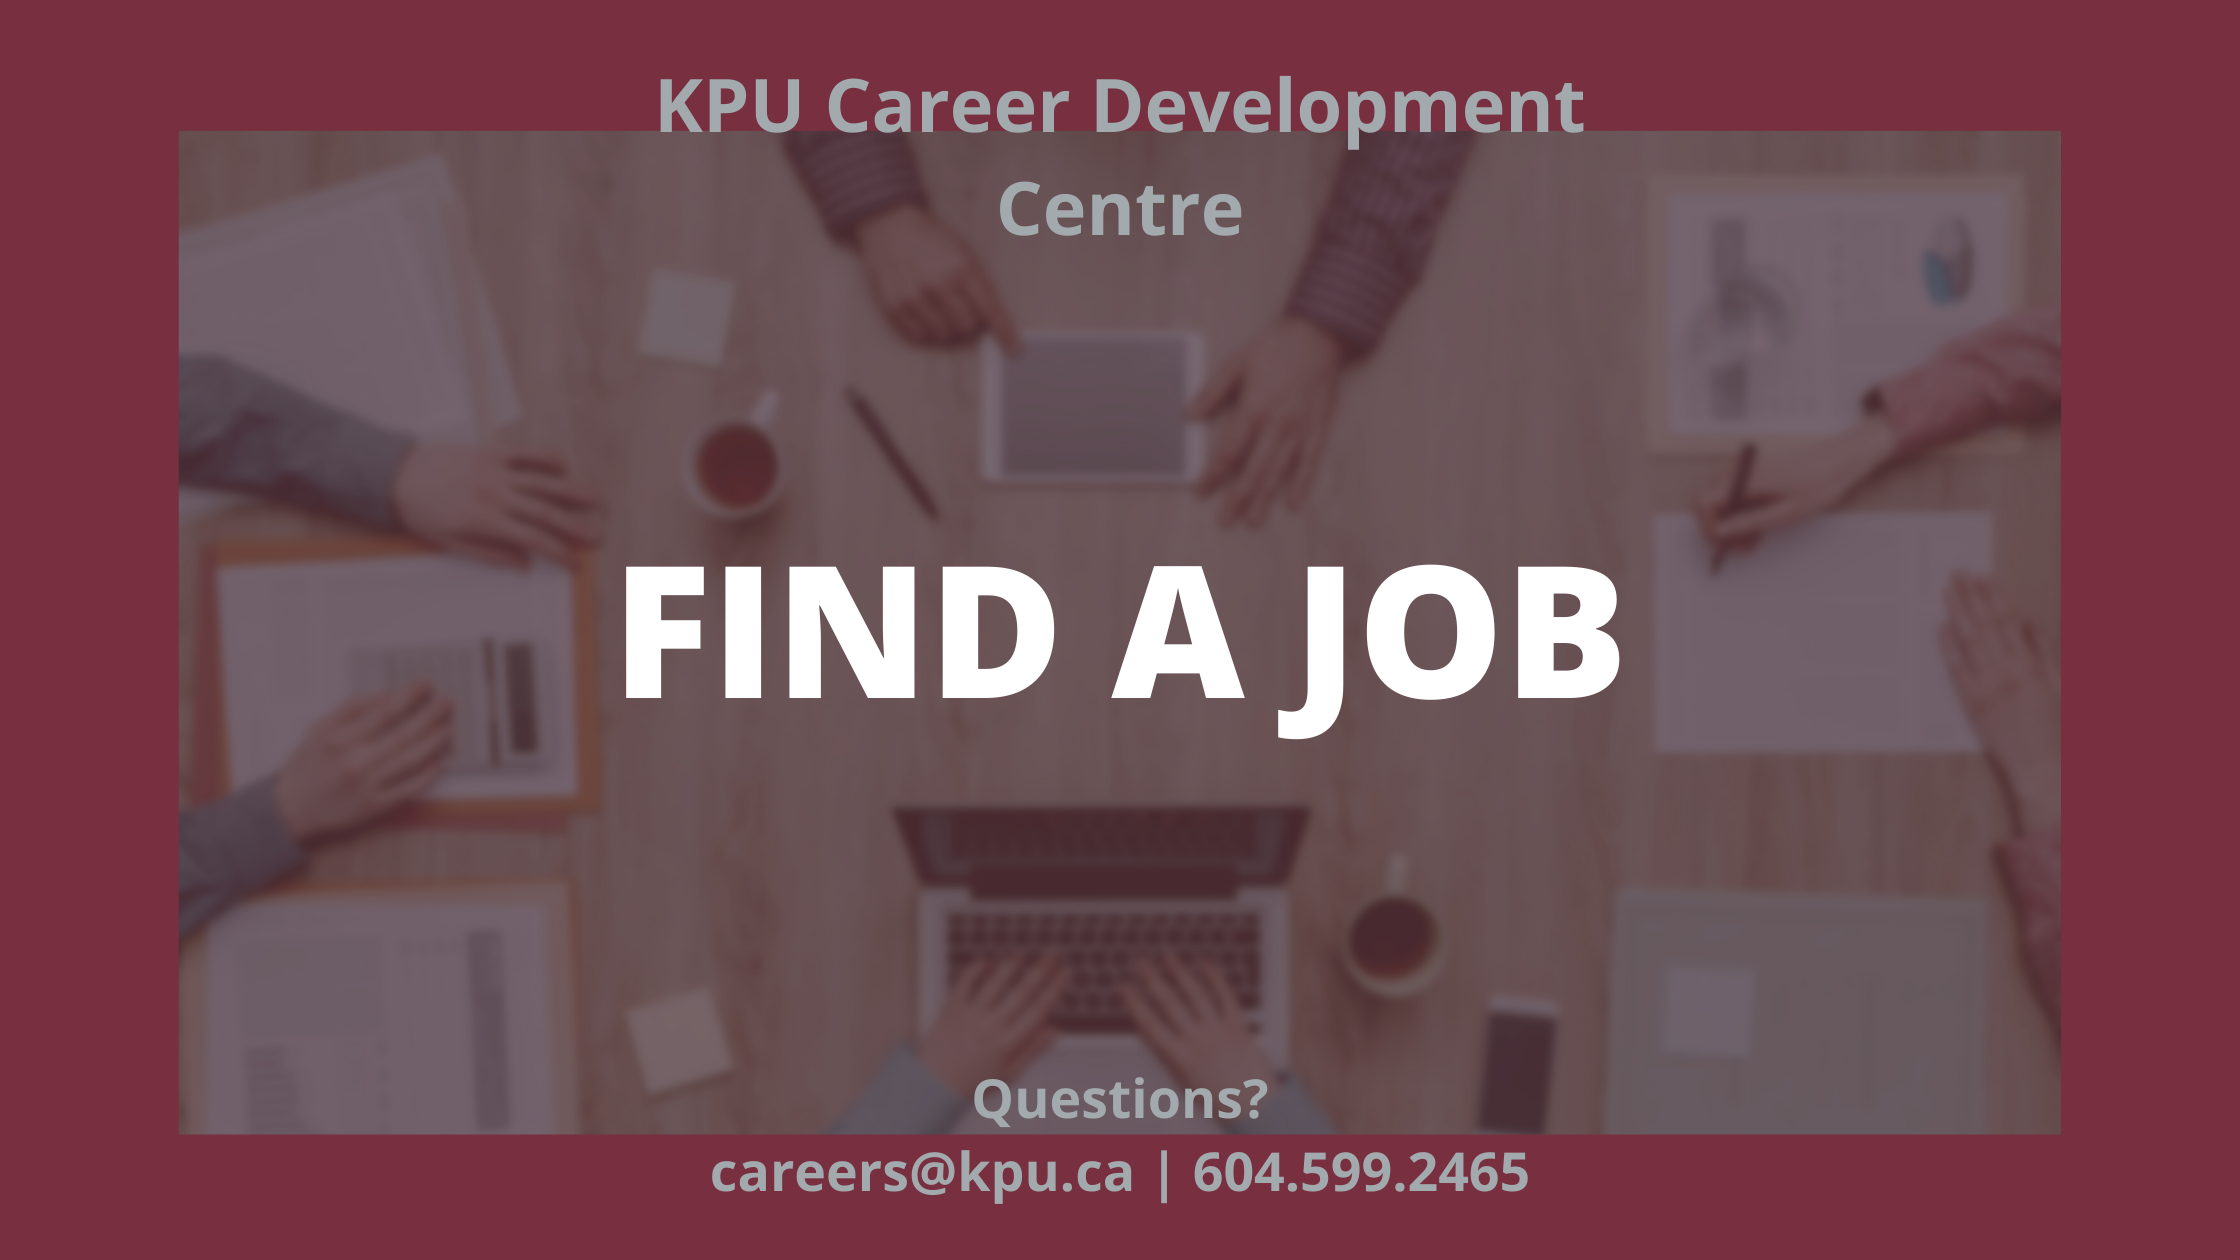 Career Resources - Find a Job